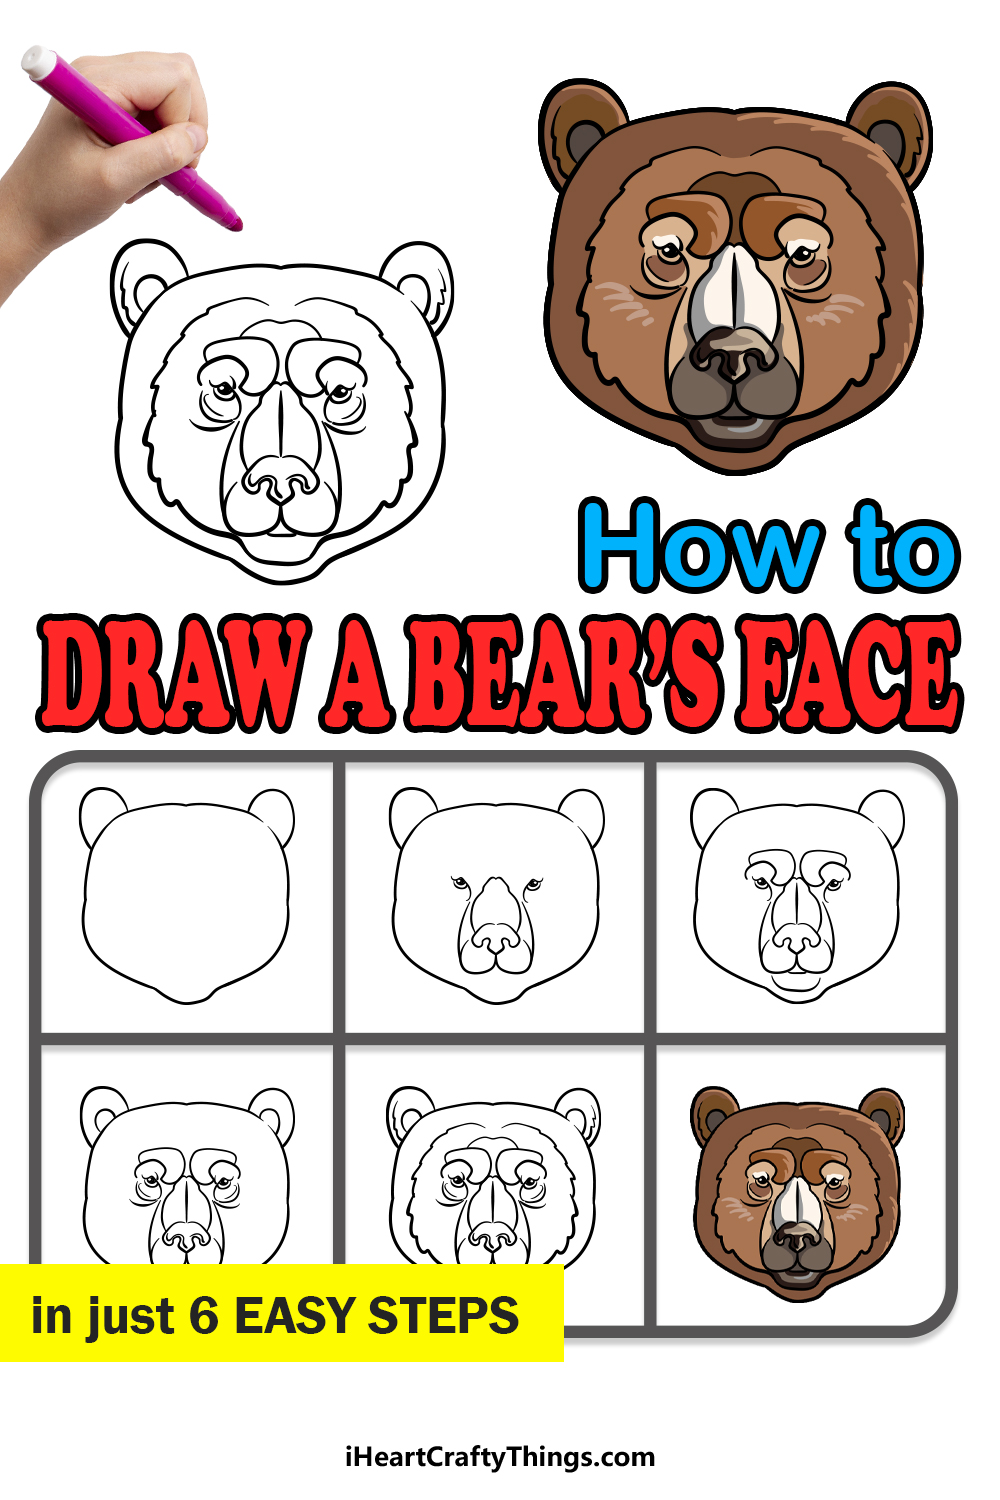 how to draw bear's face in 6 easy steps